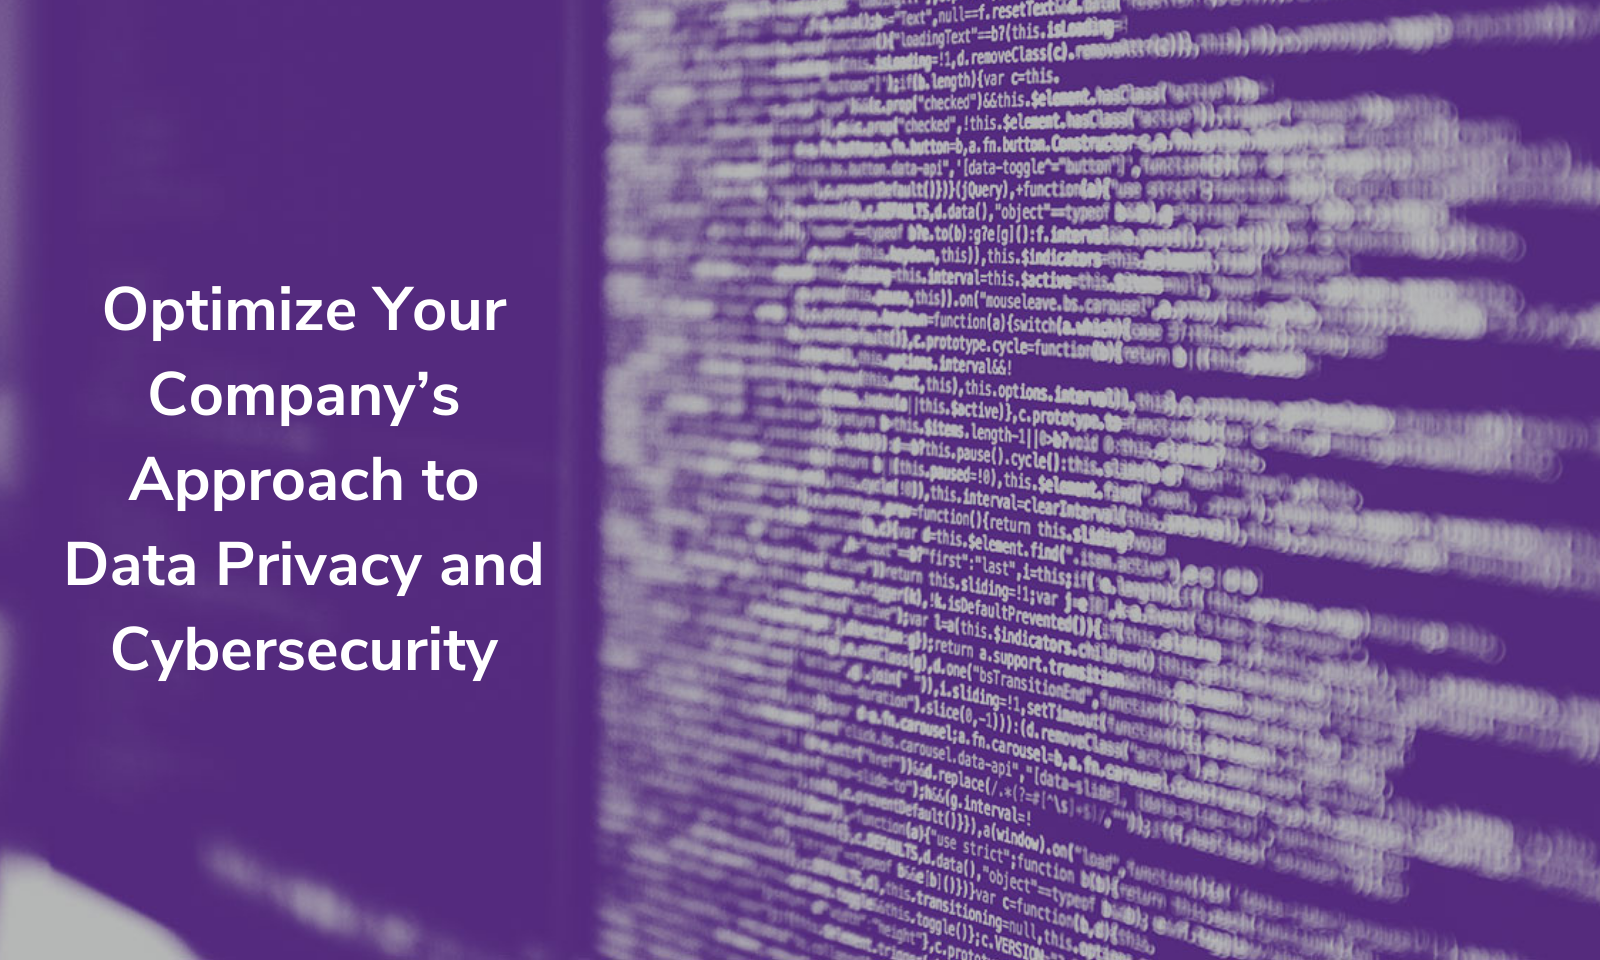 Optimize Your Company's Approach to Data Privacy and Cybersecurity